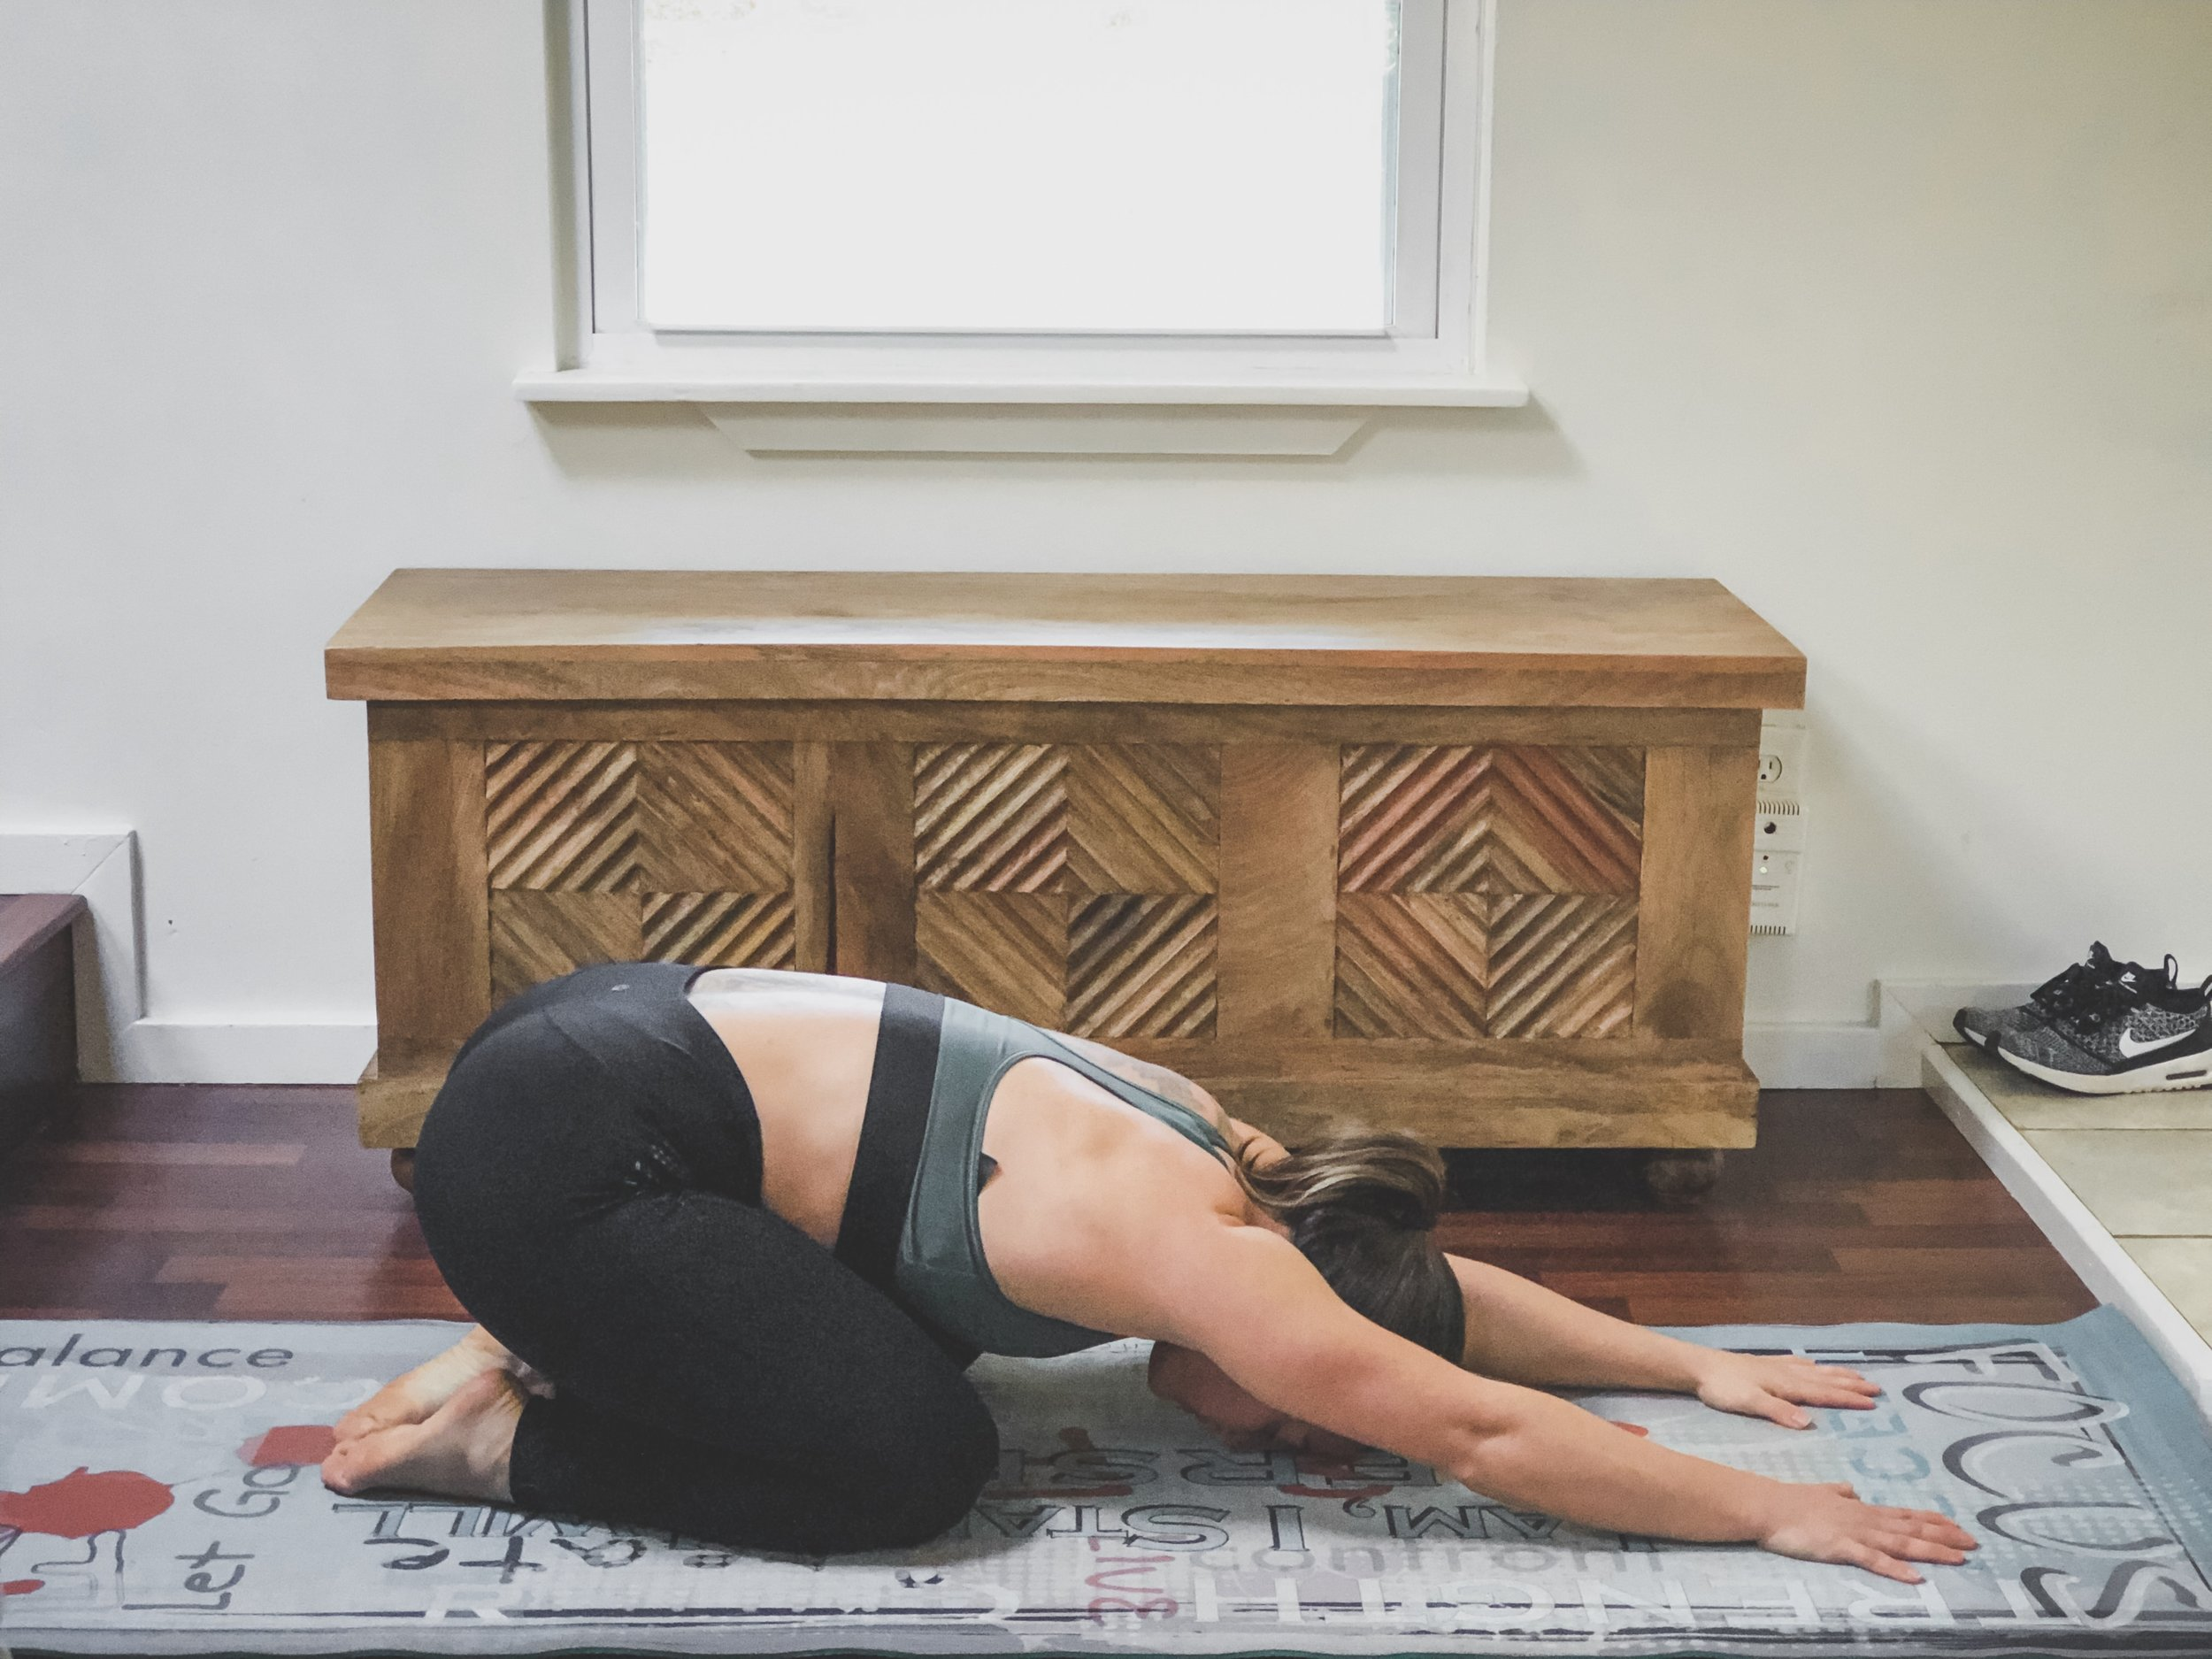 3. Child's pose - This stretch is subtle, gentle, but powerful for easing stress and promoting relaxation. It can also help with relieving back pain.